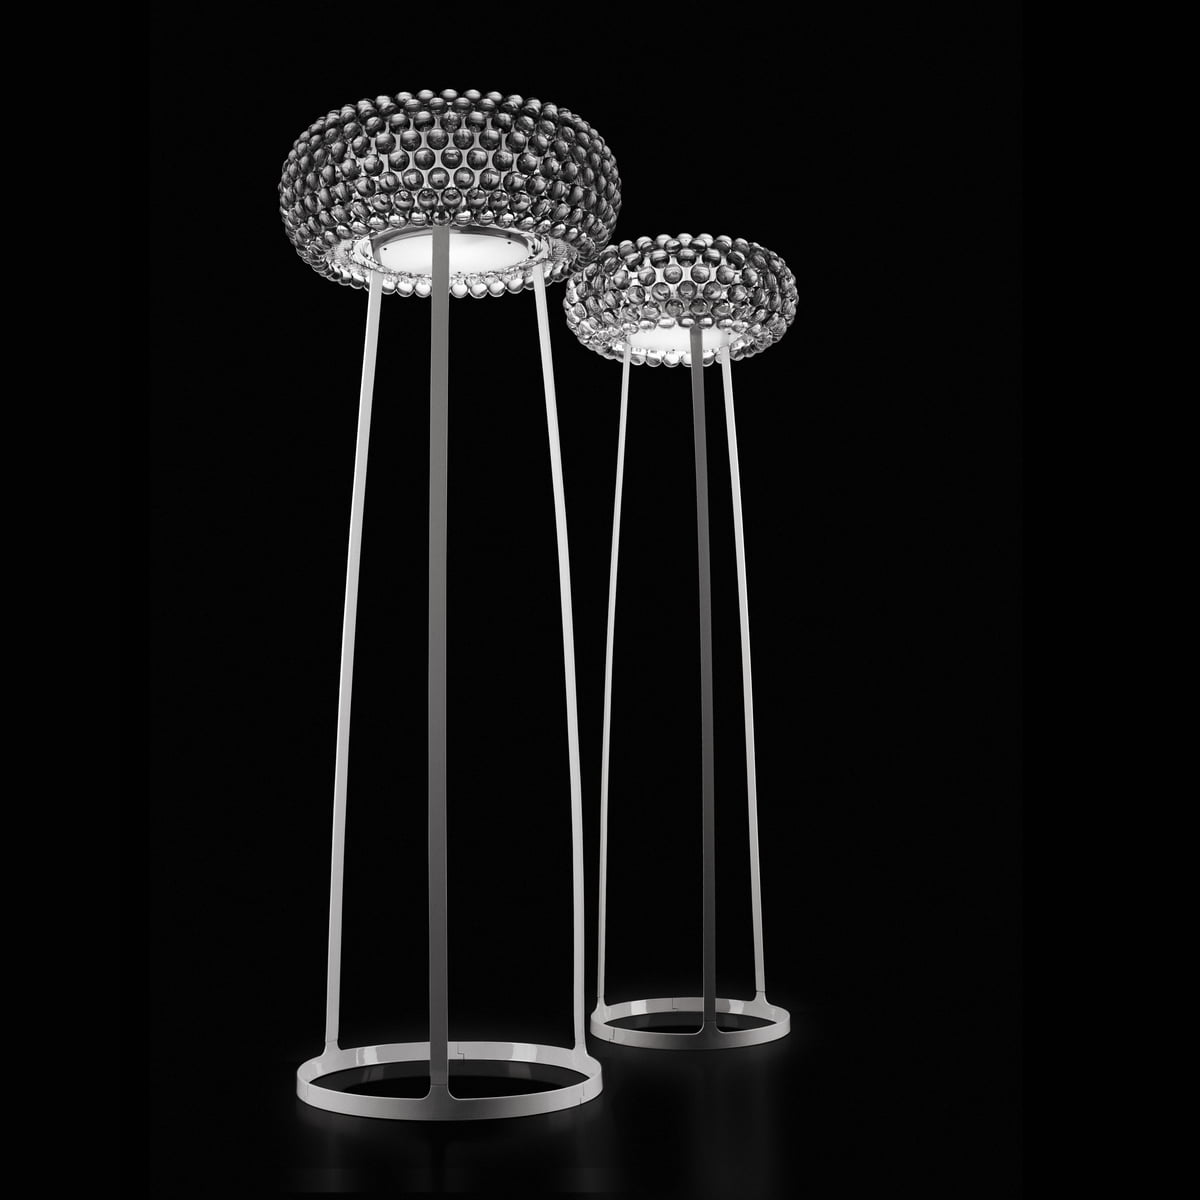 caboche floor lamp by foscarini. Black Bedroom Furniture Sets. Home Design Ideas